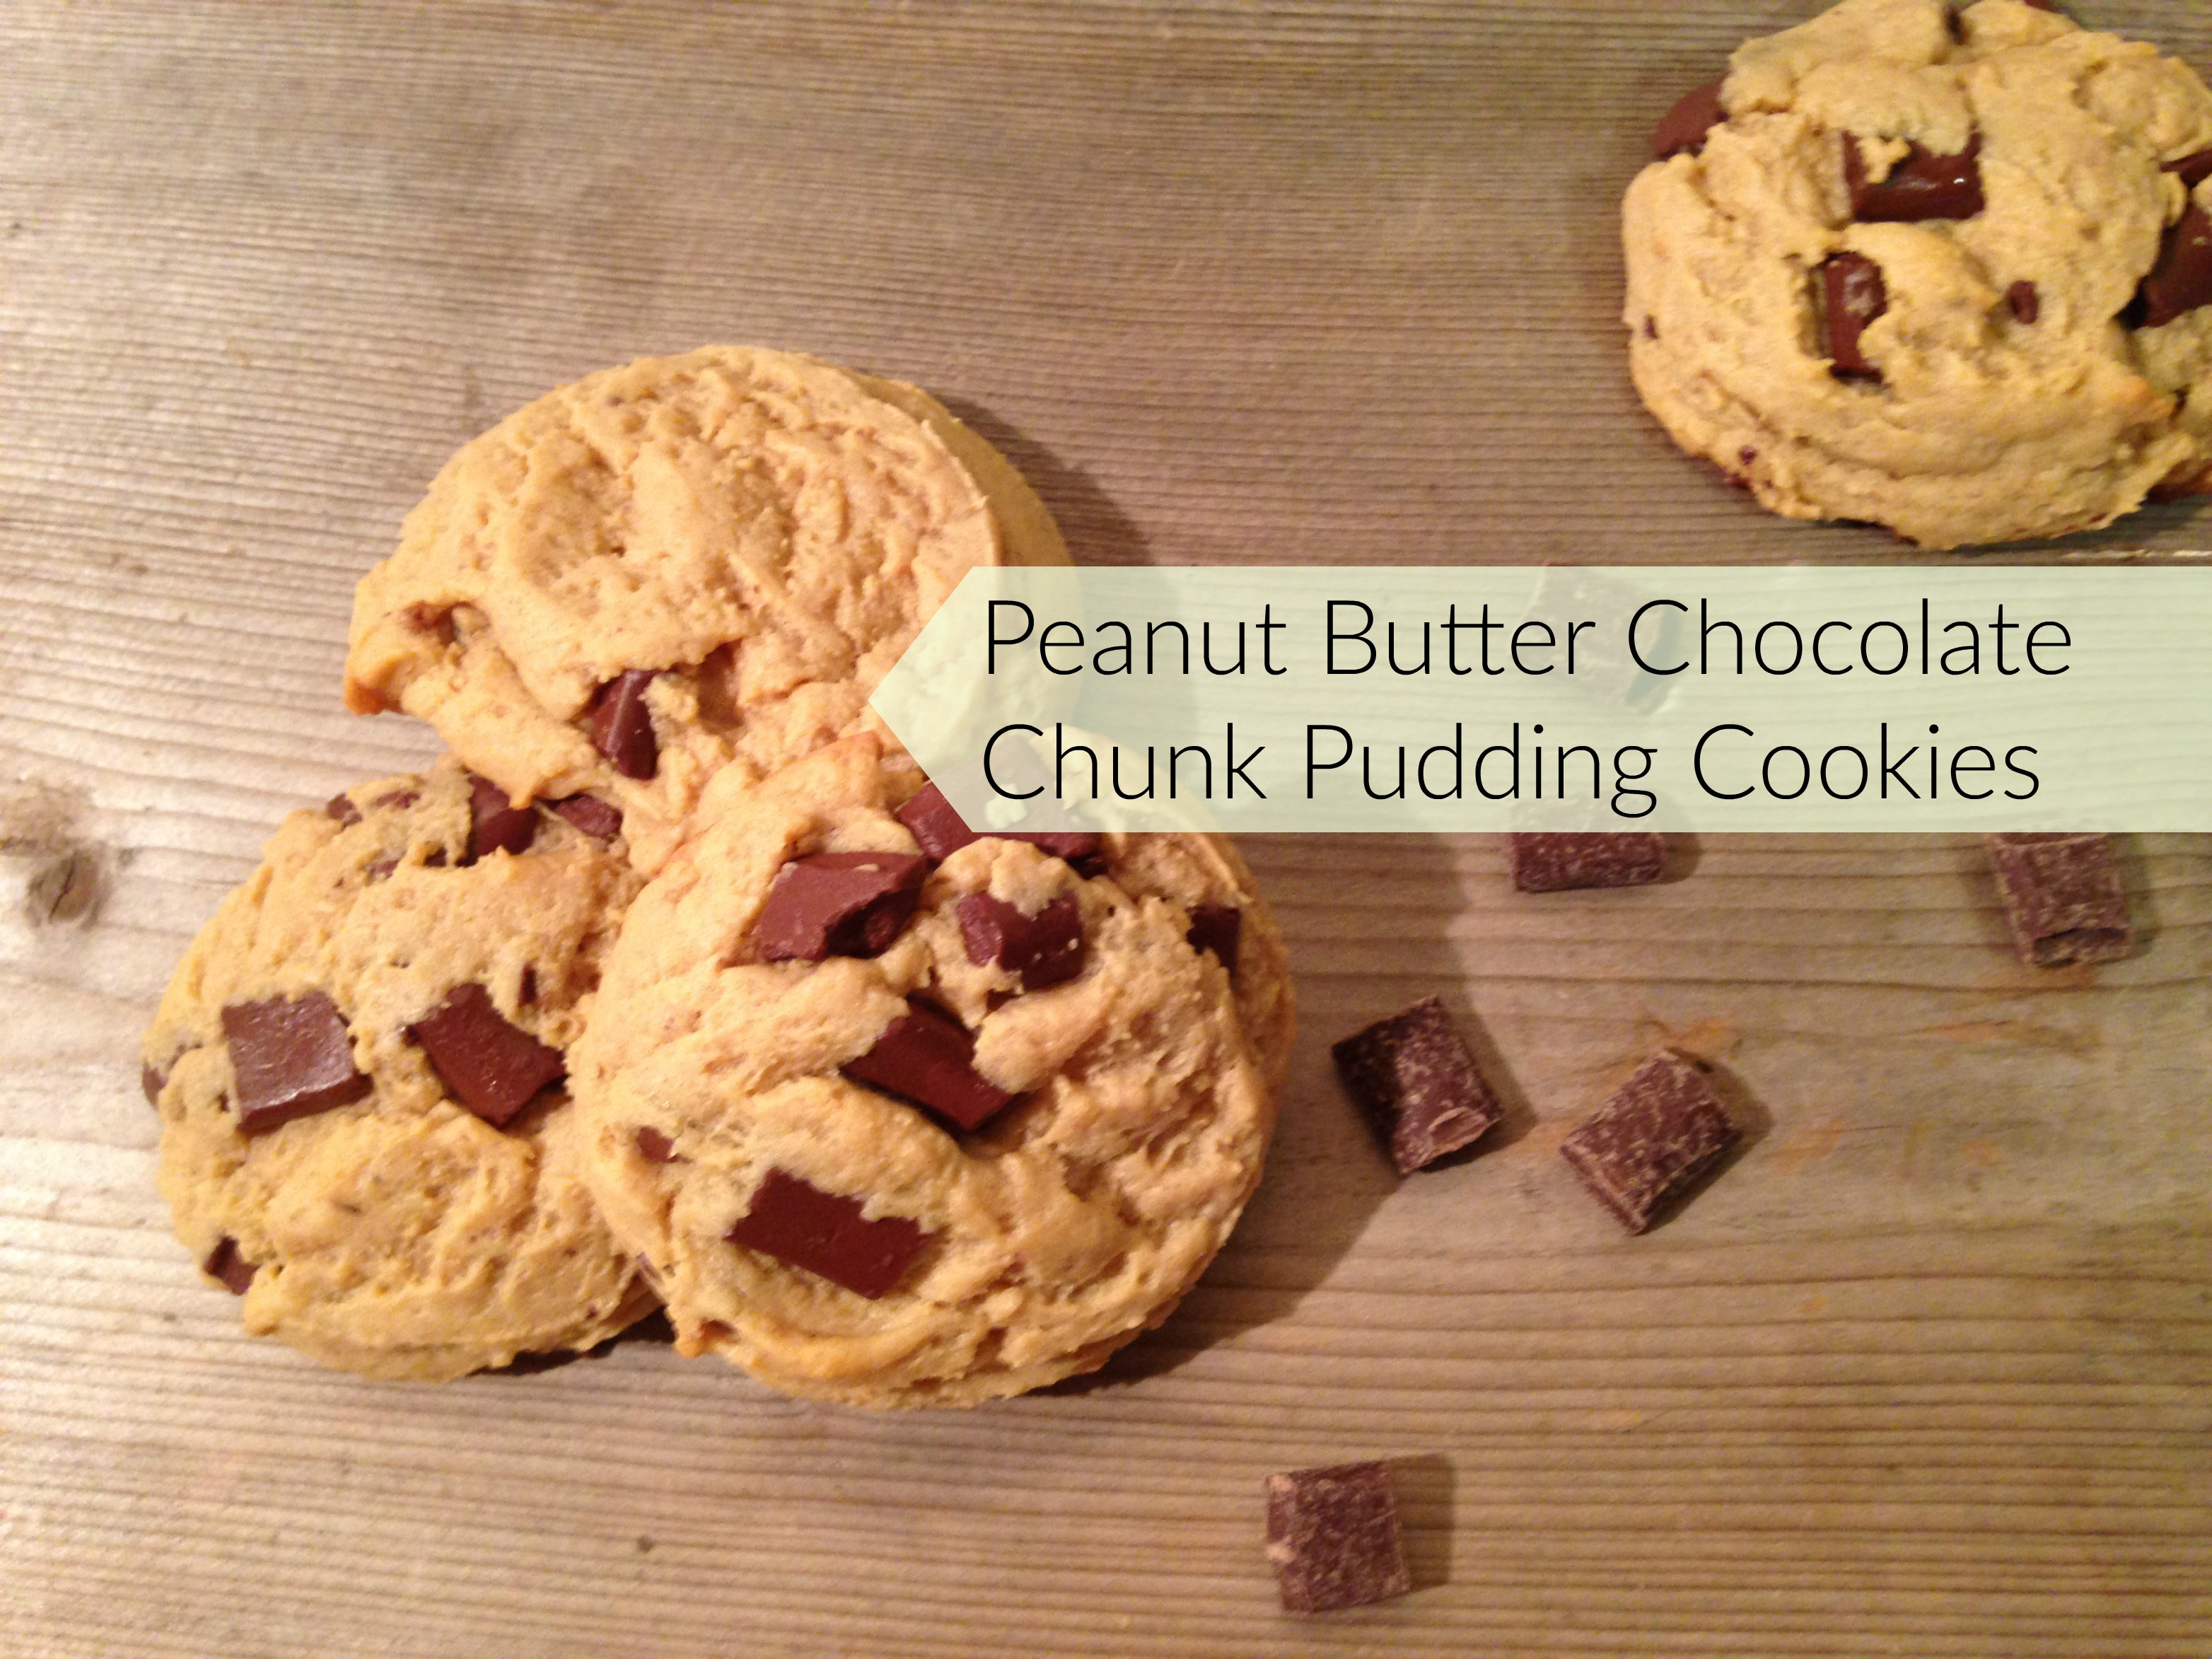 Chocolate Chunk Peanut Butter Pudding Cookies